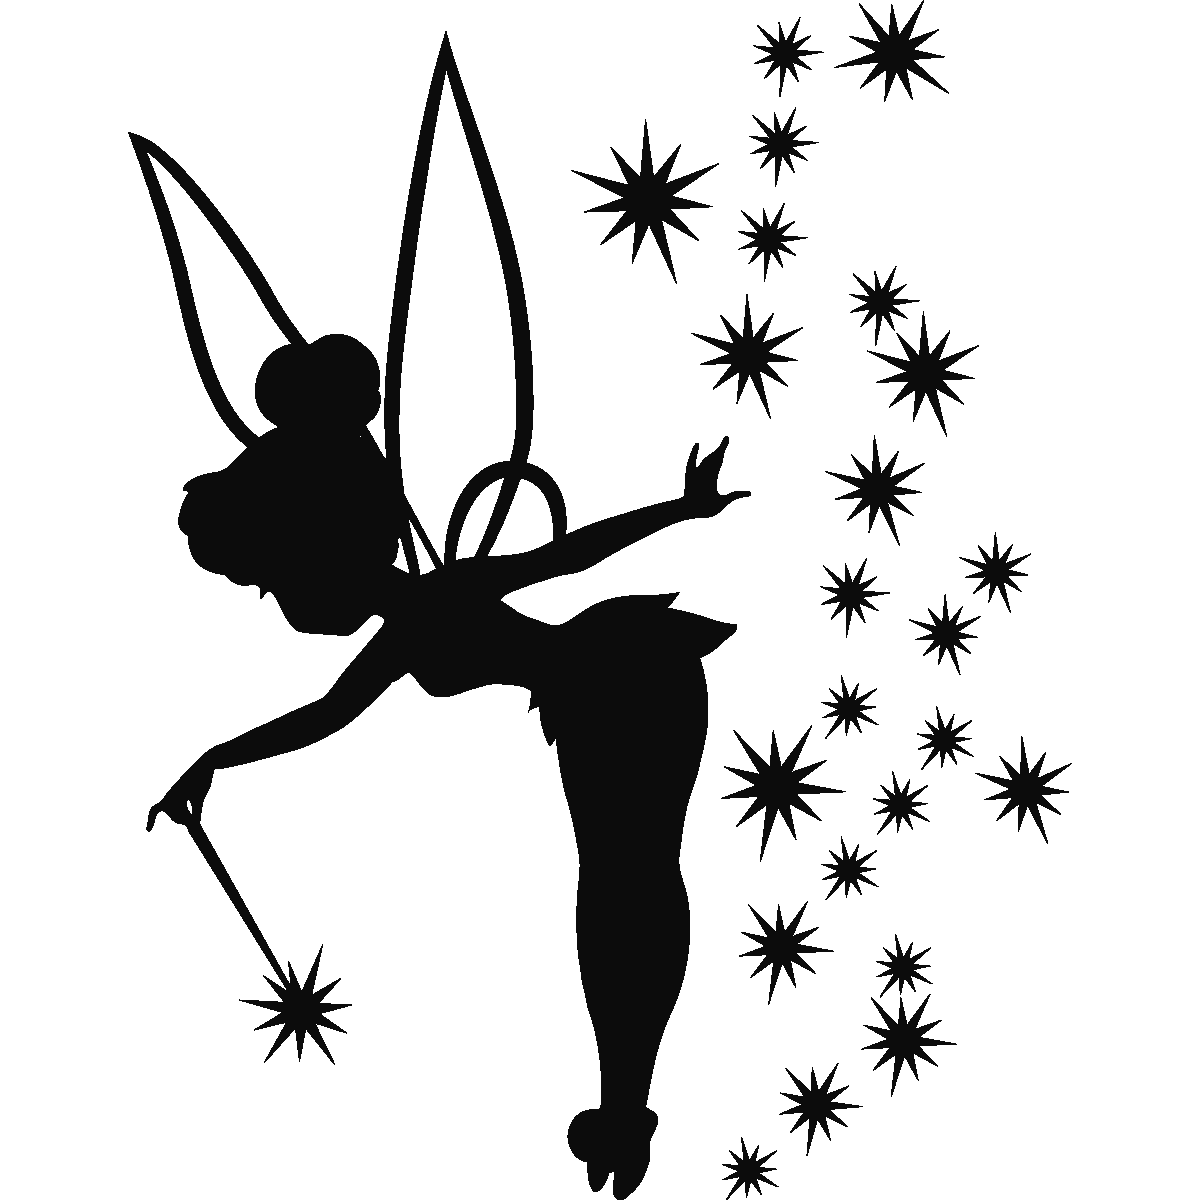 free tinkerbell pumpkin stencil - Gecce.tackletarts.co vector freeuse download